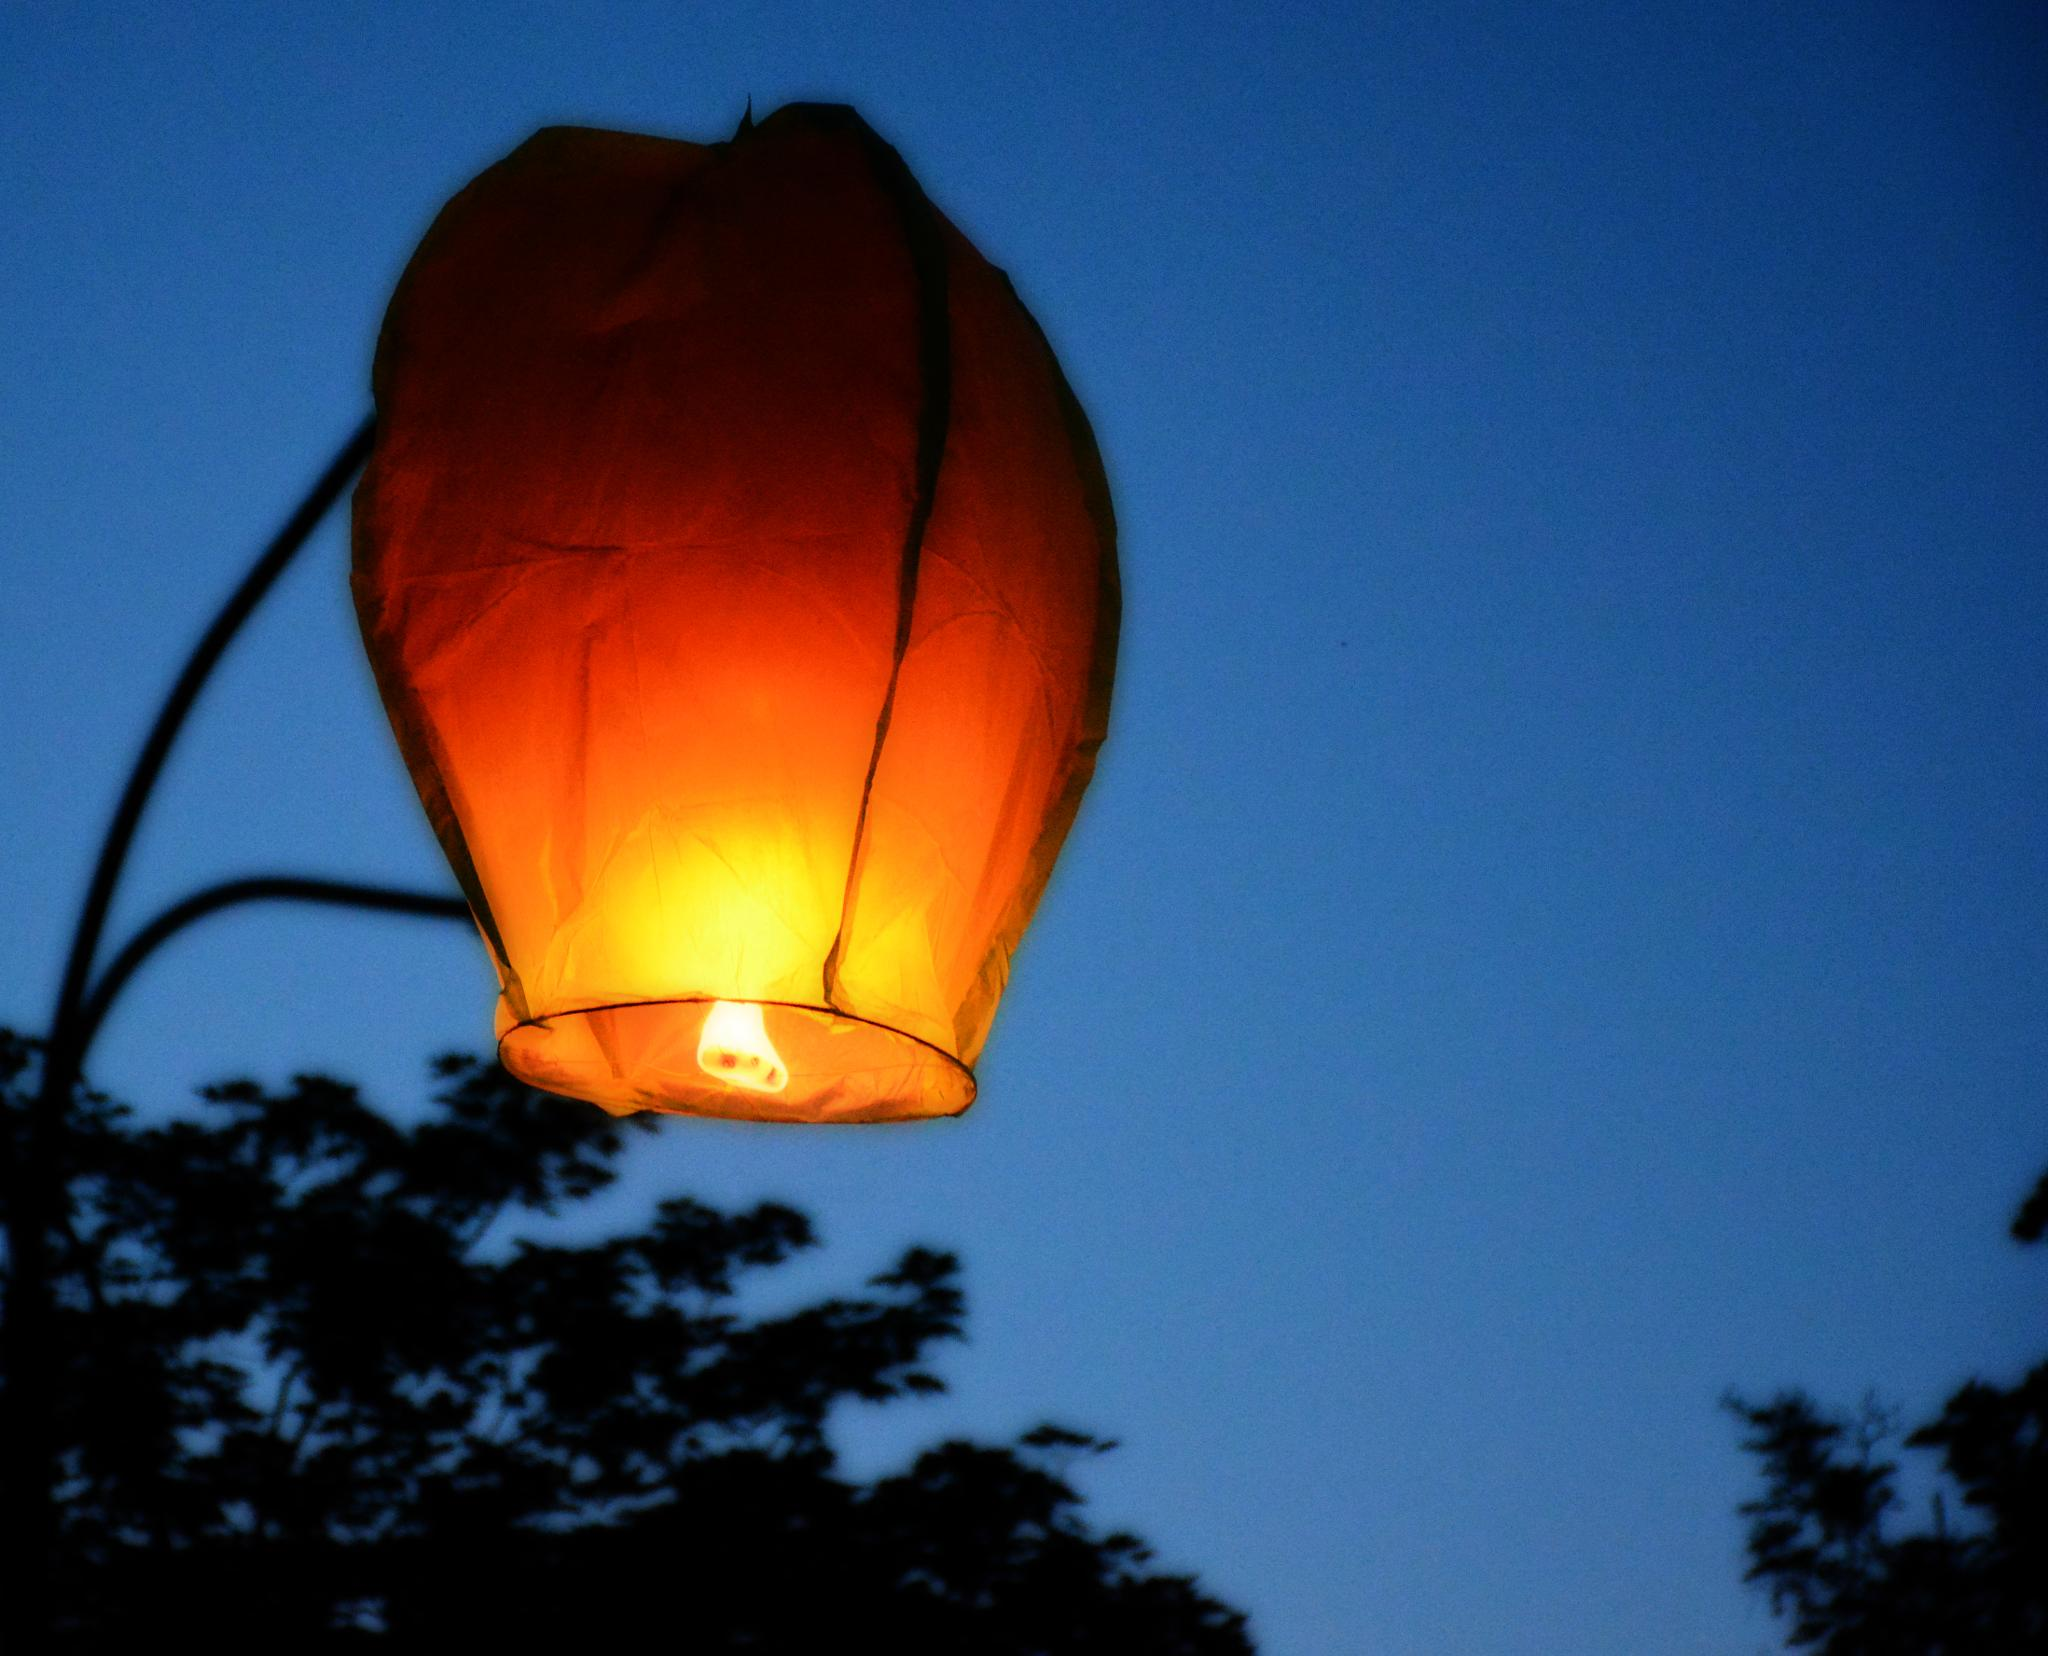 Lampion on the pole by adi_fire